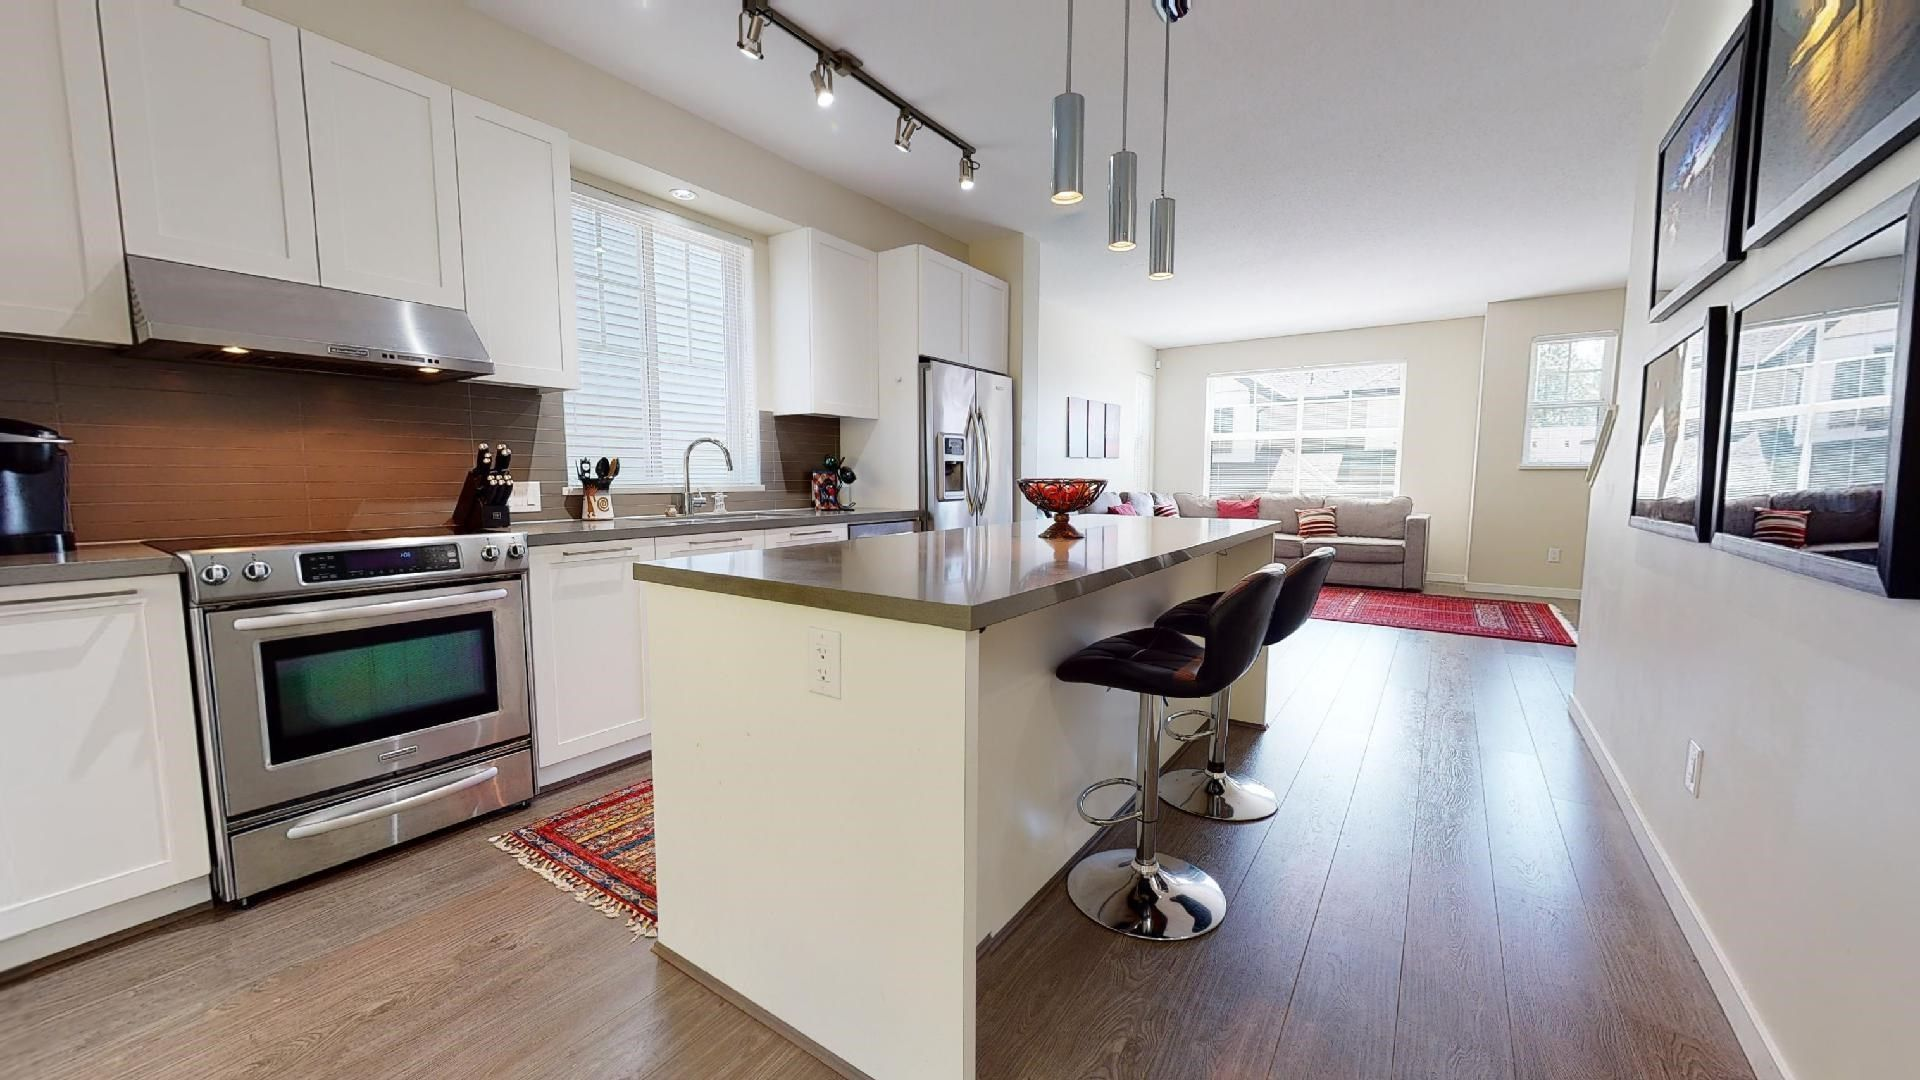 """Main Photo: 15 3470 HIGHLAND Drive in Coquitlam: Burke Mountain Townhouse for sale in """"BRIDLEWOOD"""" : MLS®# R2599758"""